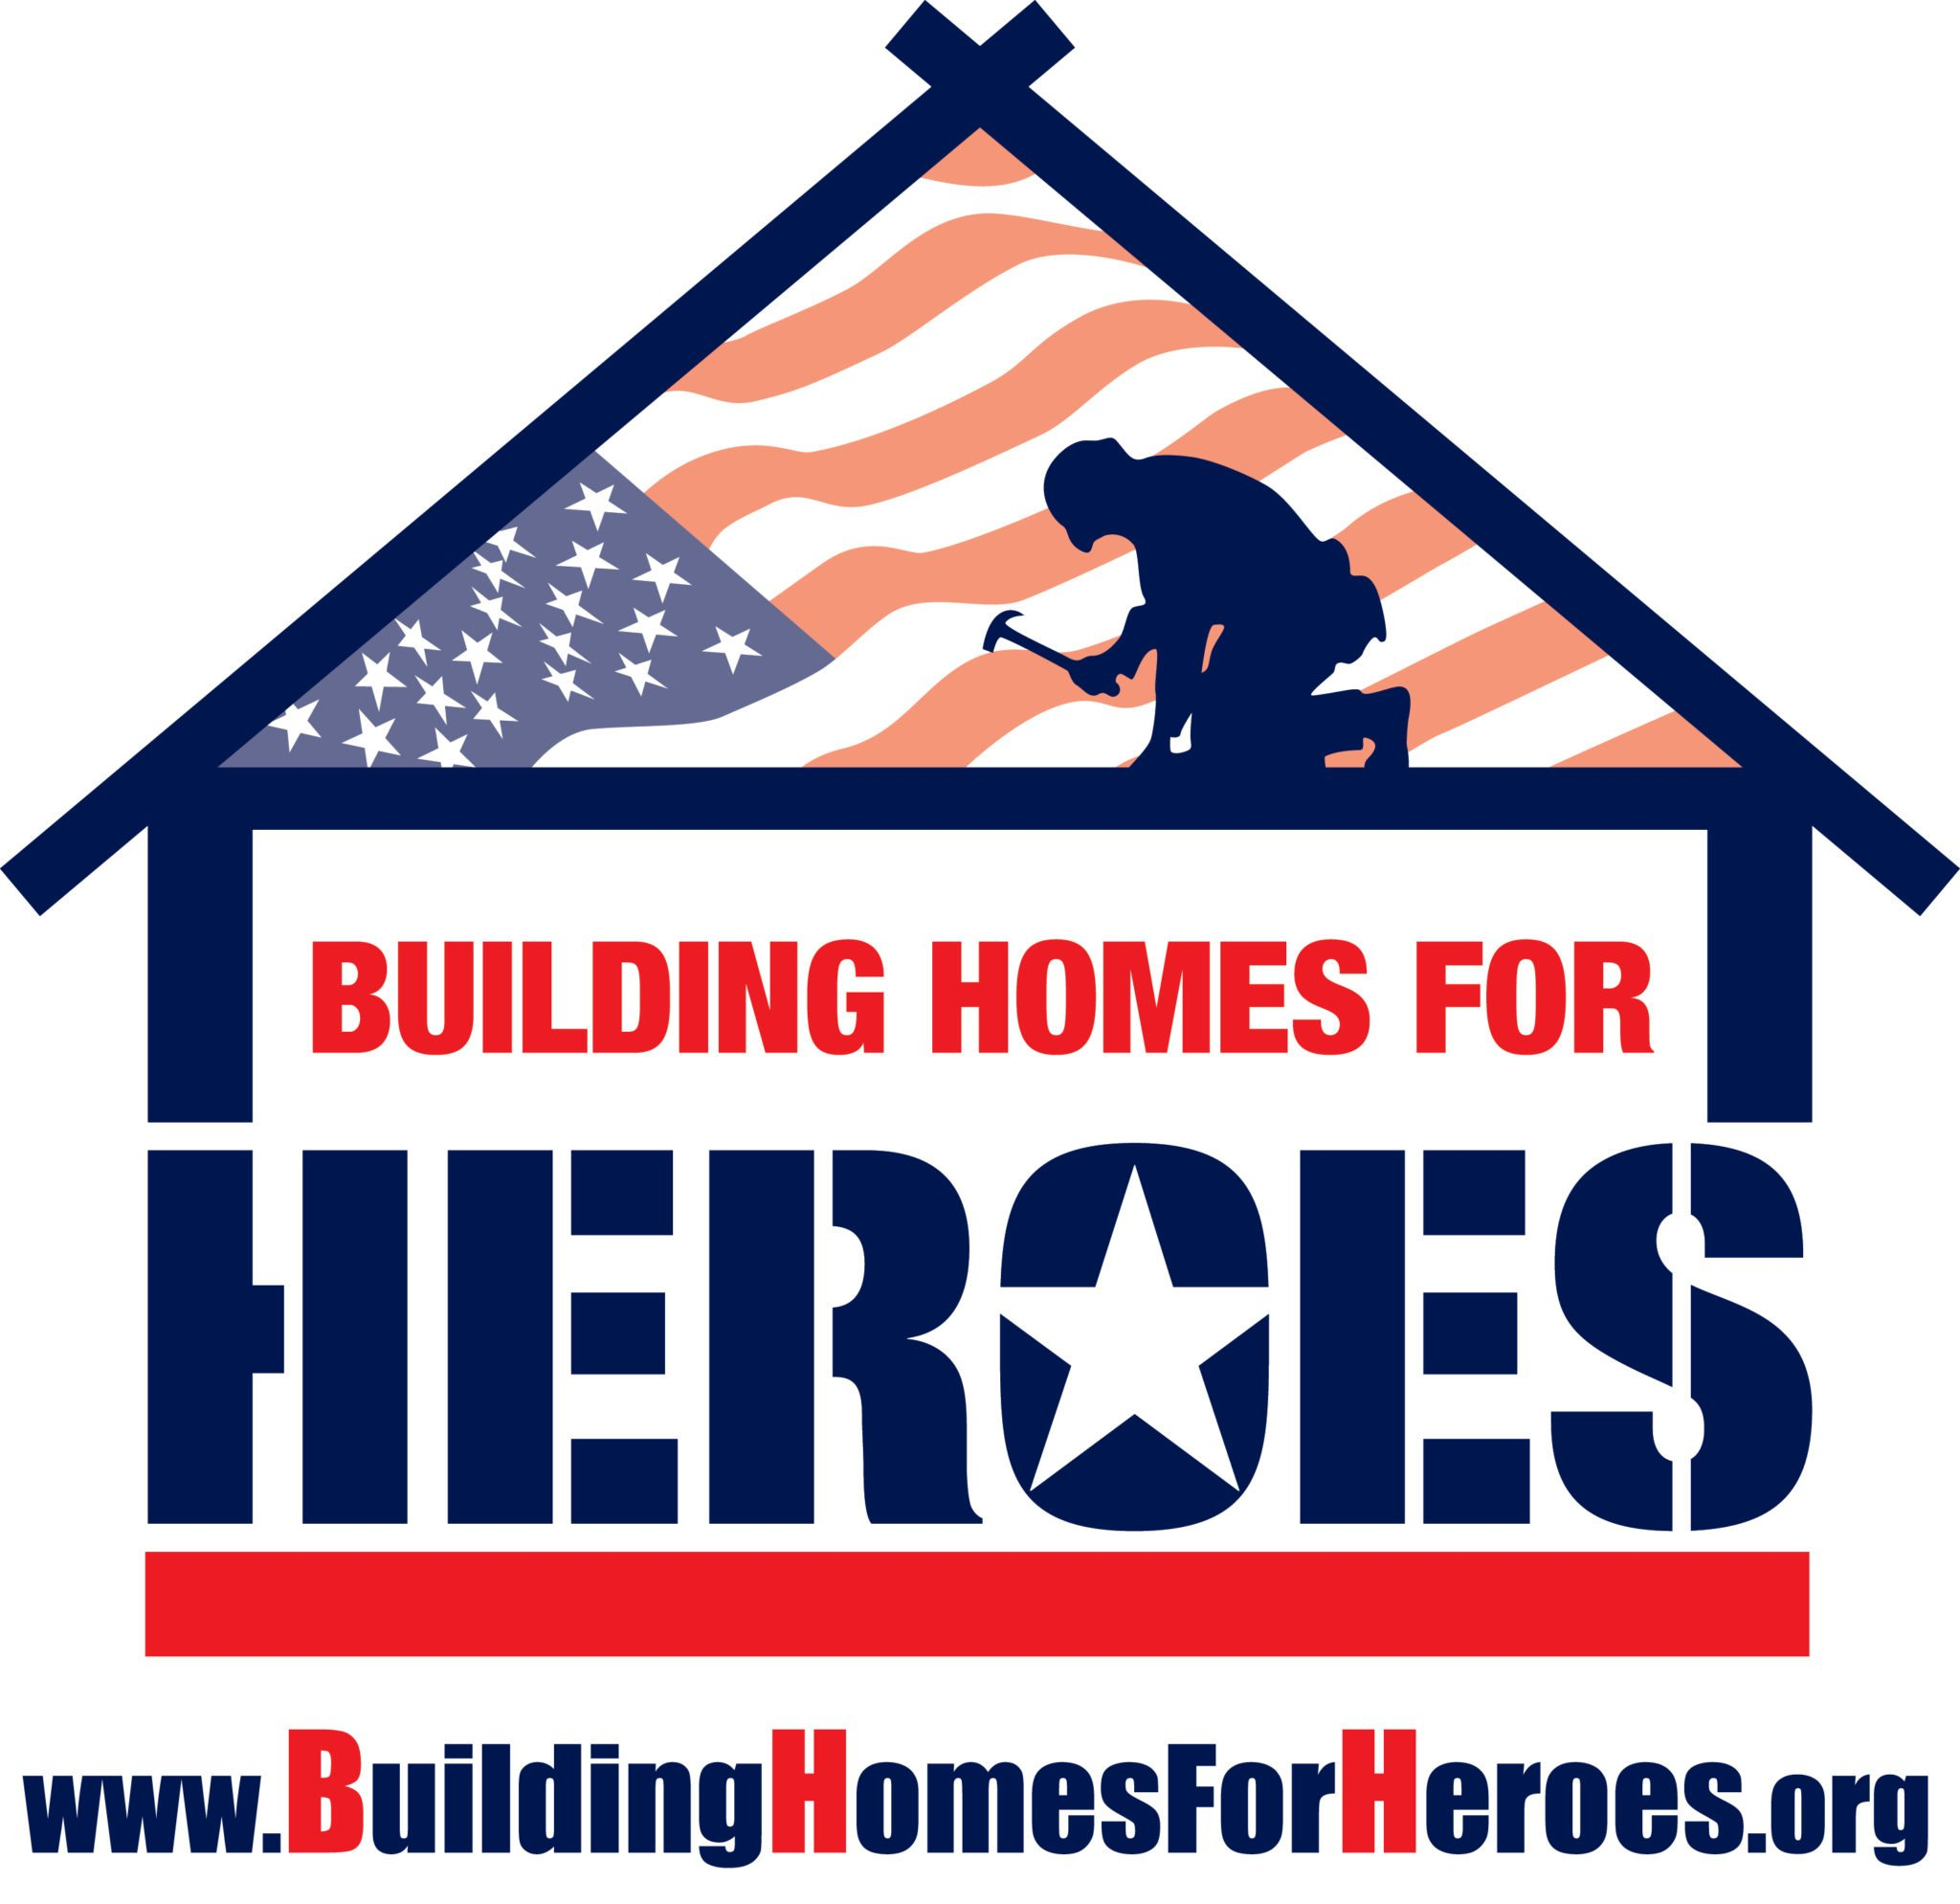 Building Homes For Heroes